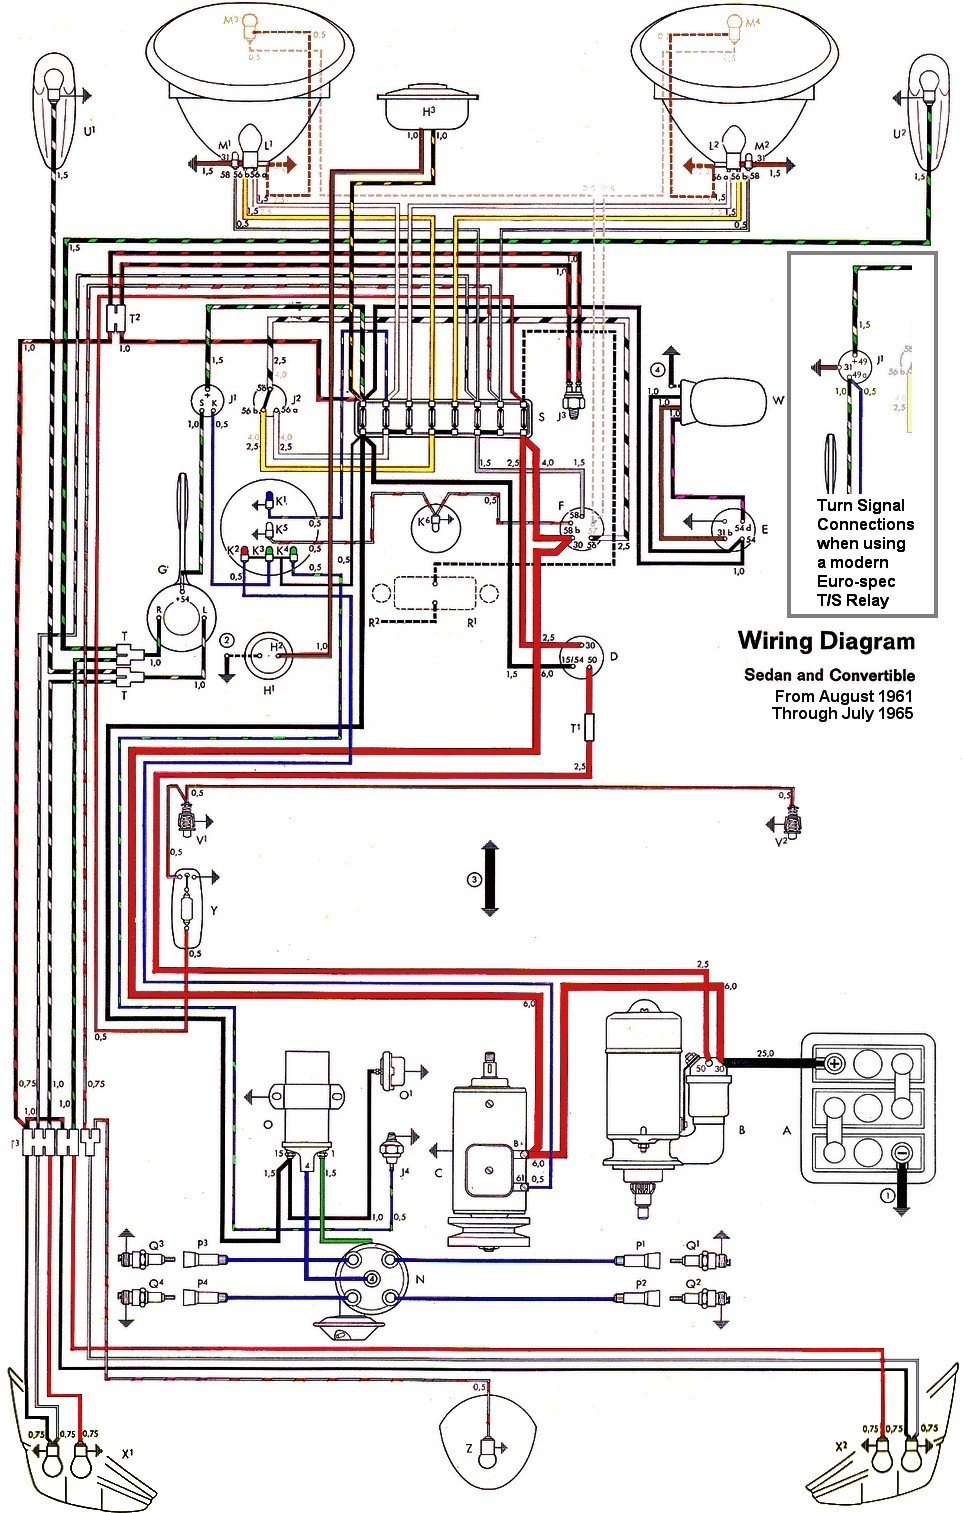 bug_62 65withinset wiring diagram vw beetle sedan and convertible 1961 1965 vw 1971 vw bus wiring diagram at bakdesigns.co